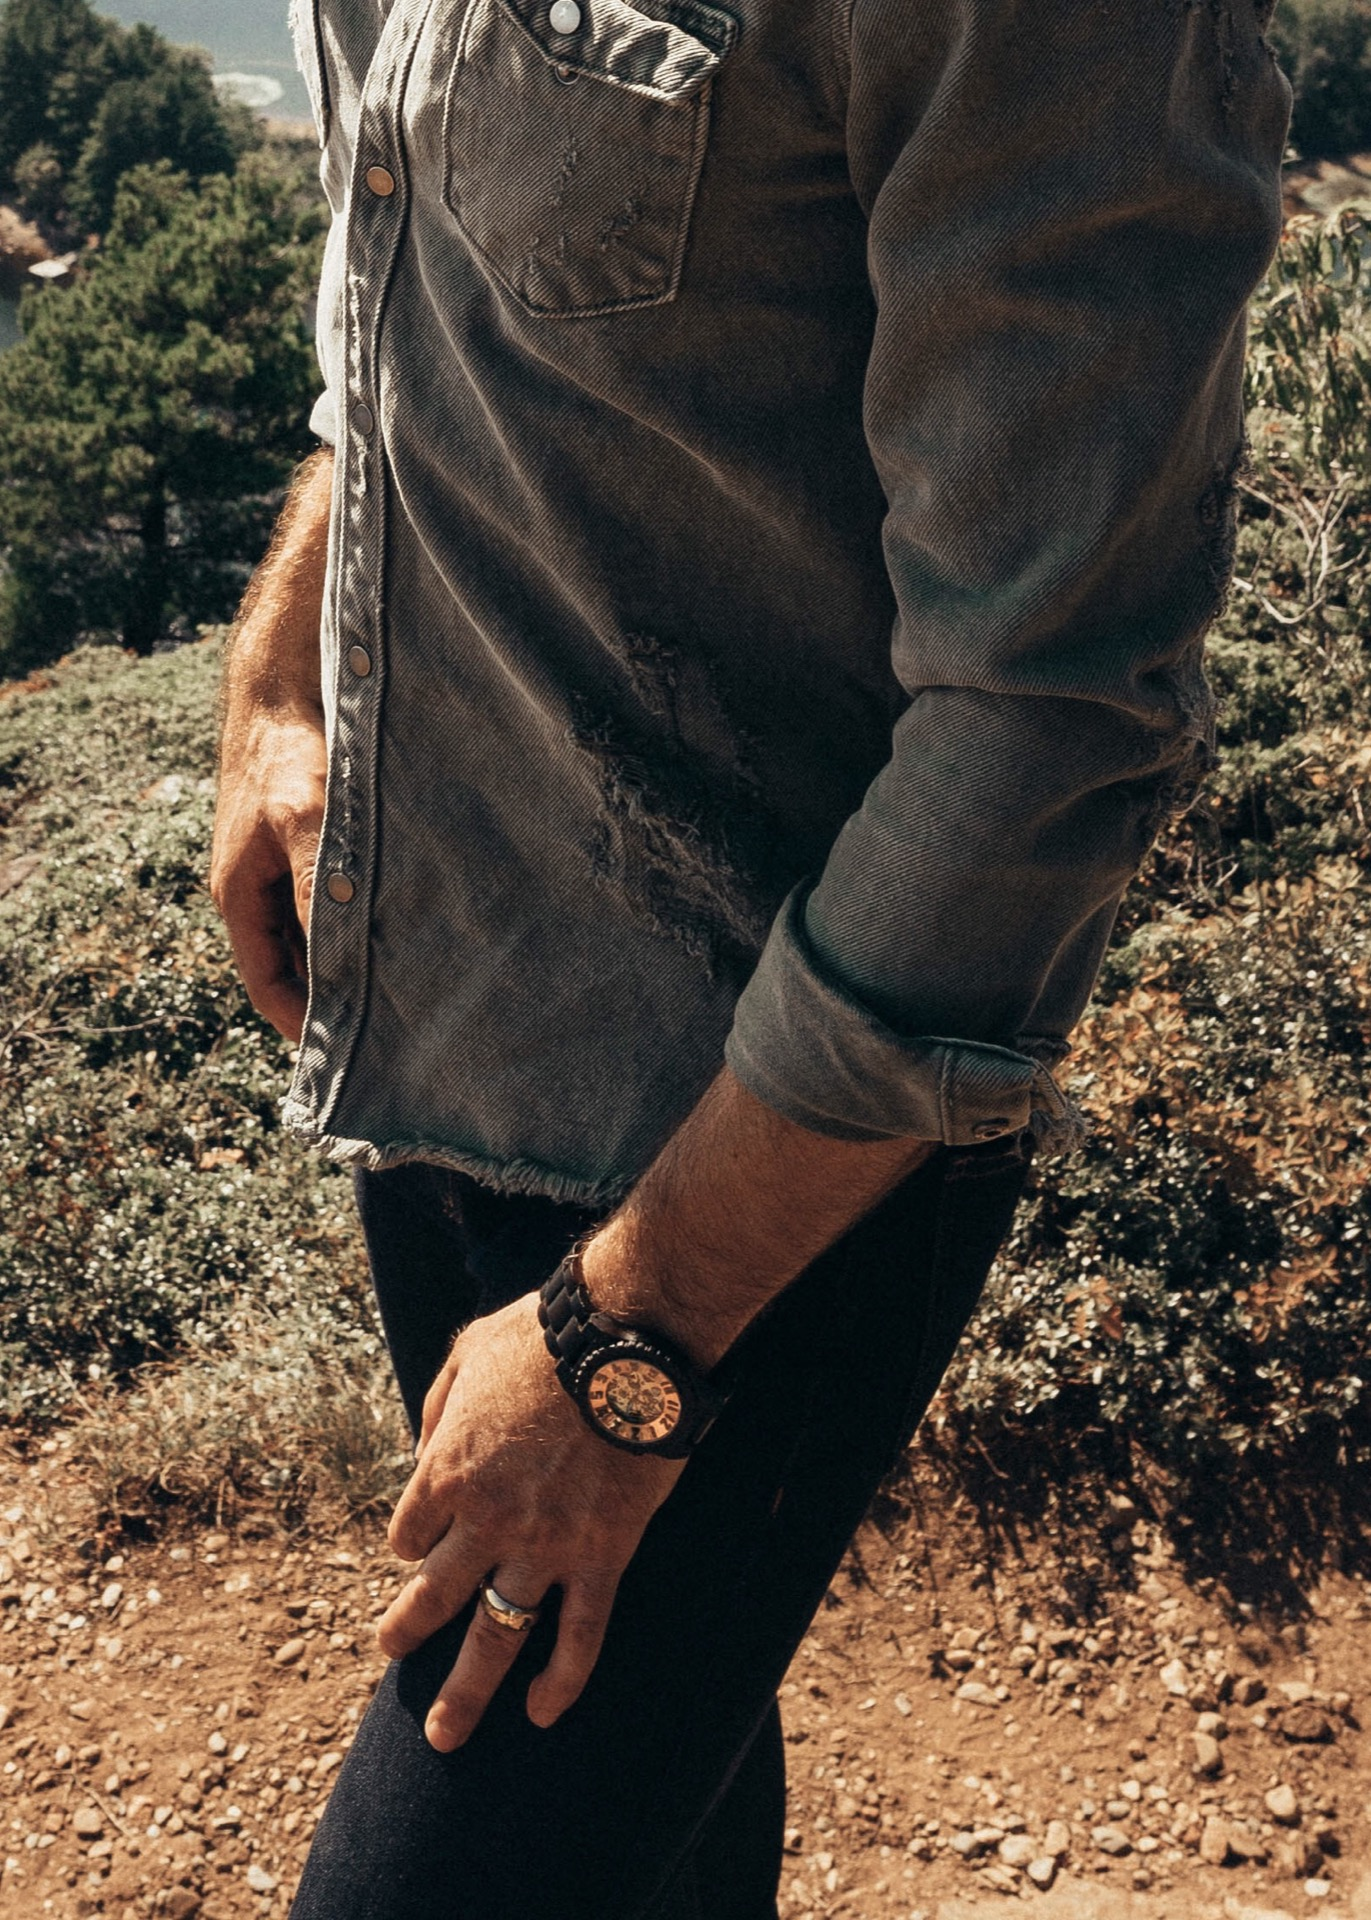 Minimal Wooden Watch modeled by Michael Checkers, men's style blogger, as part of Men's Style Trends Guide Fall 2018